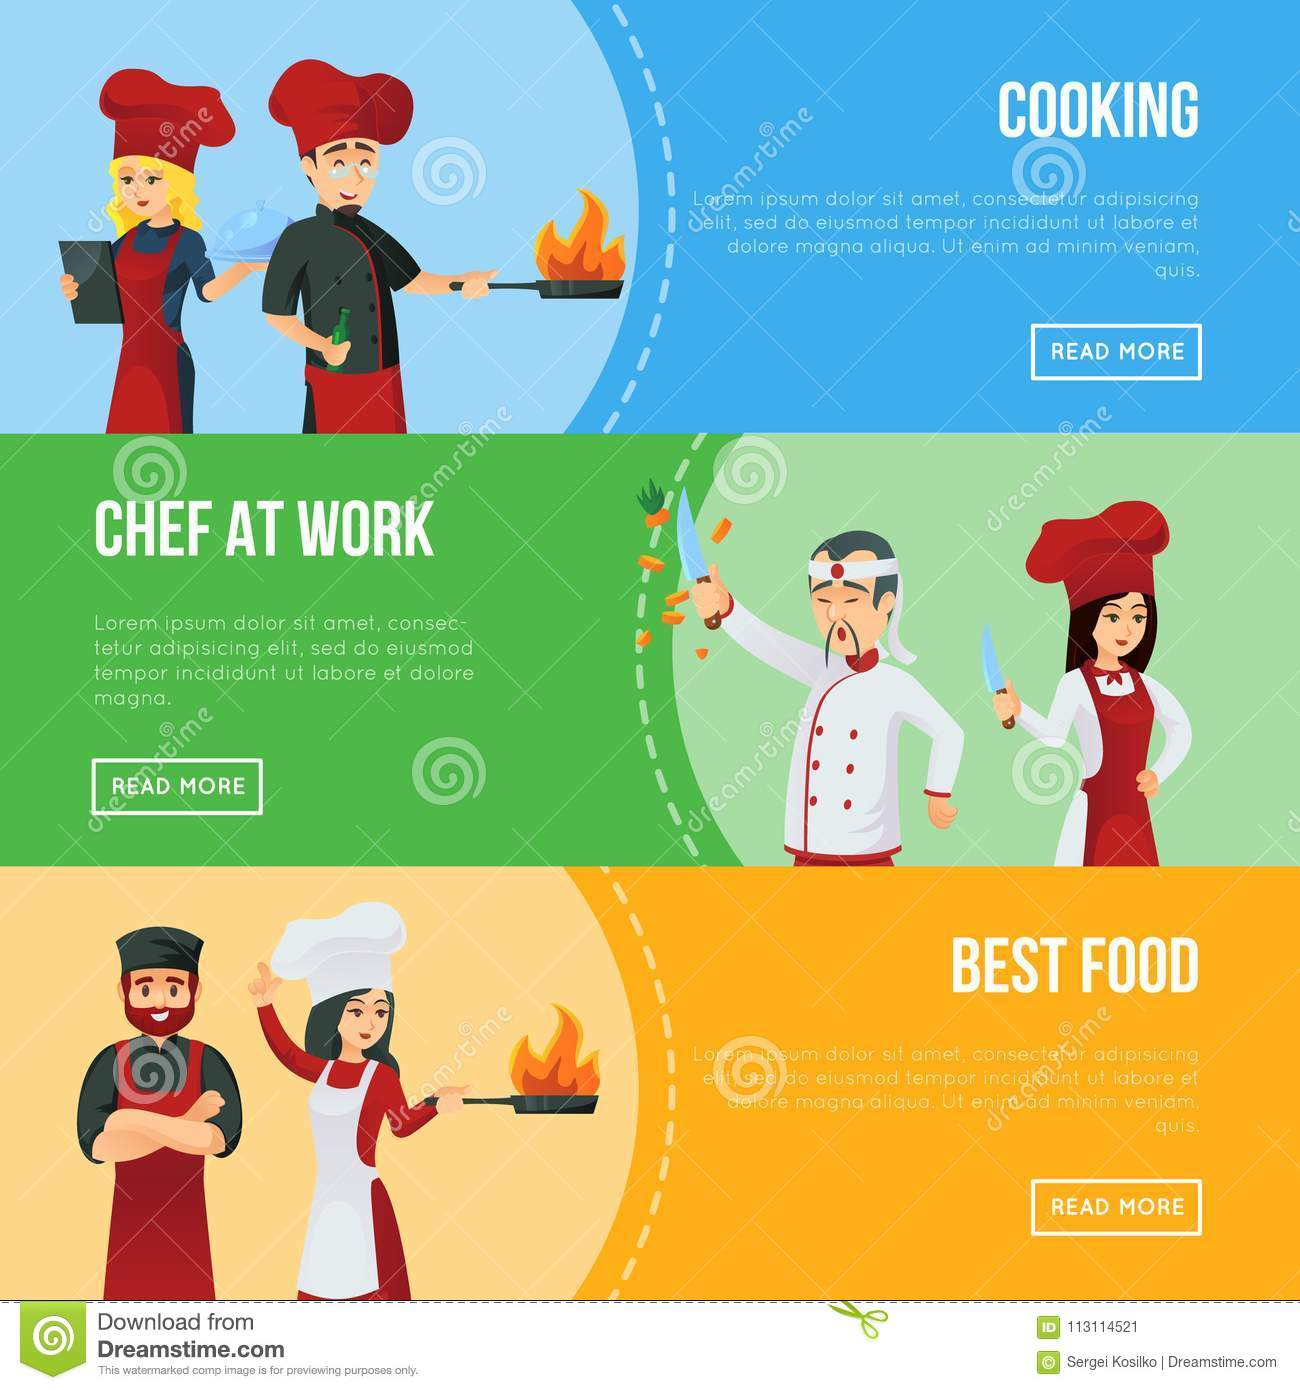 Professional Recruitment: Professional Kitchen Staff Recruitment Agency Stock Vector